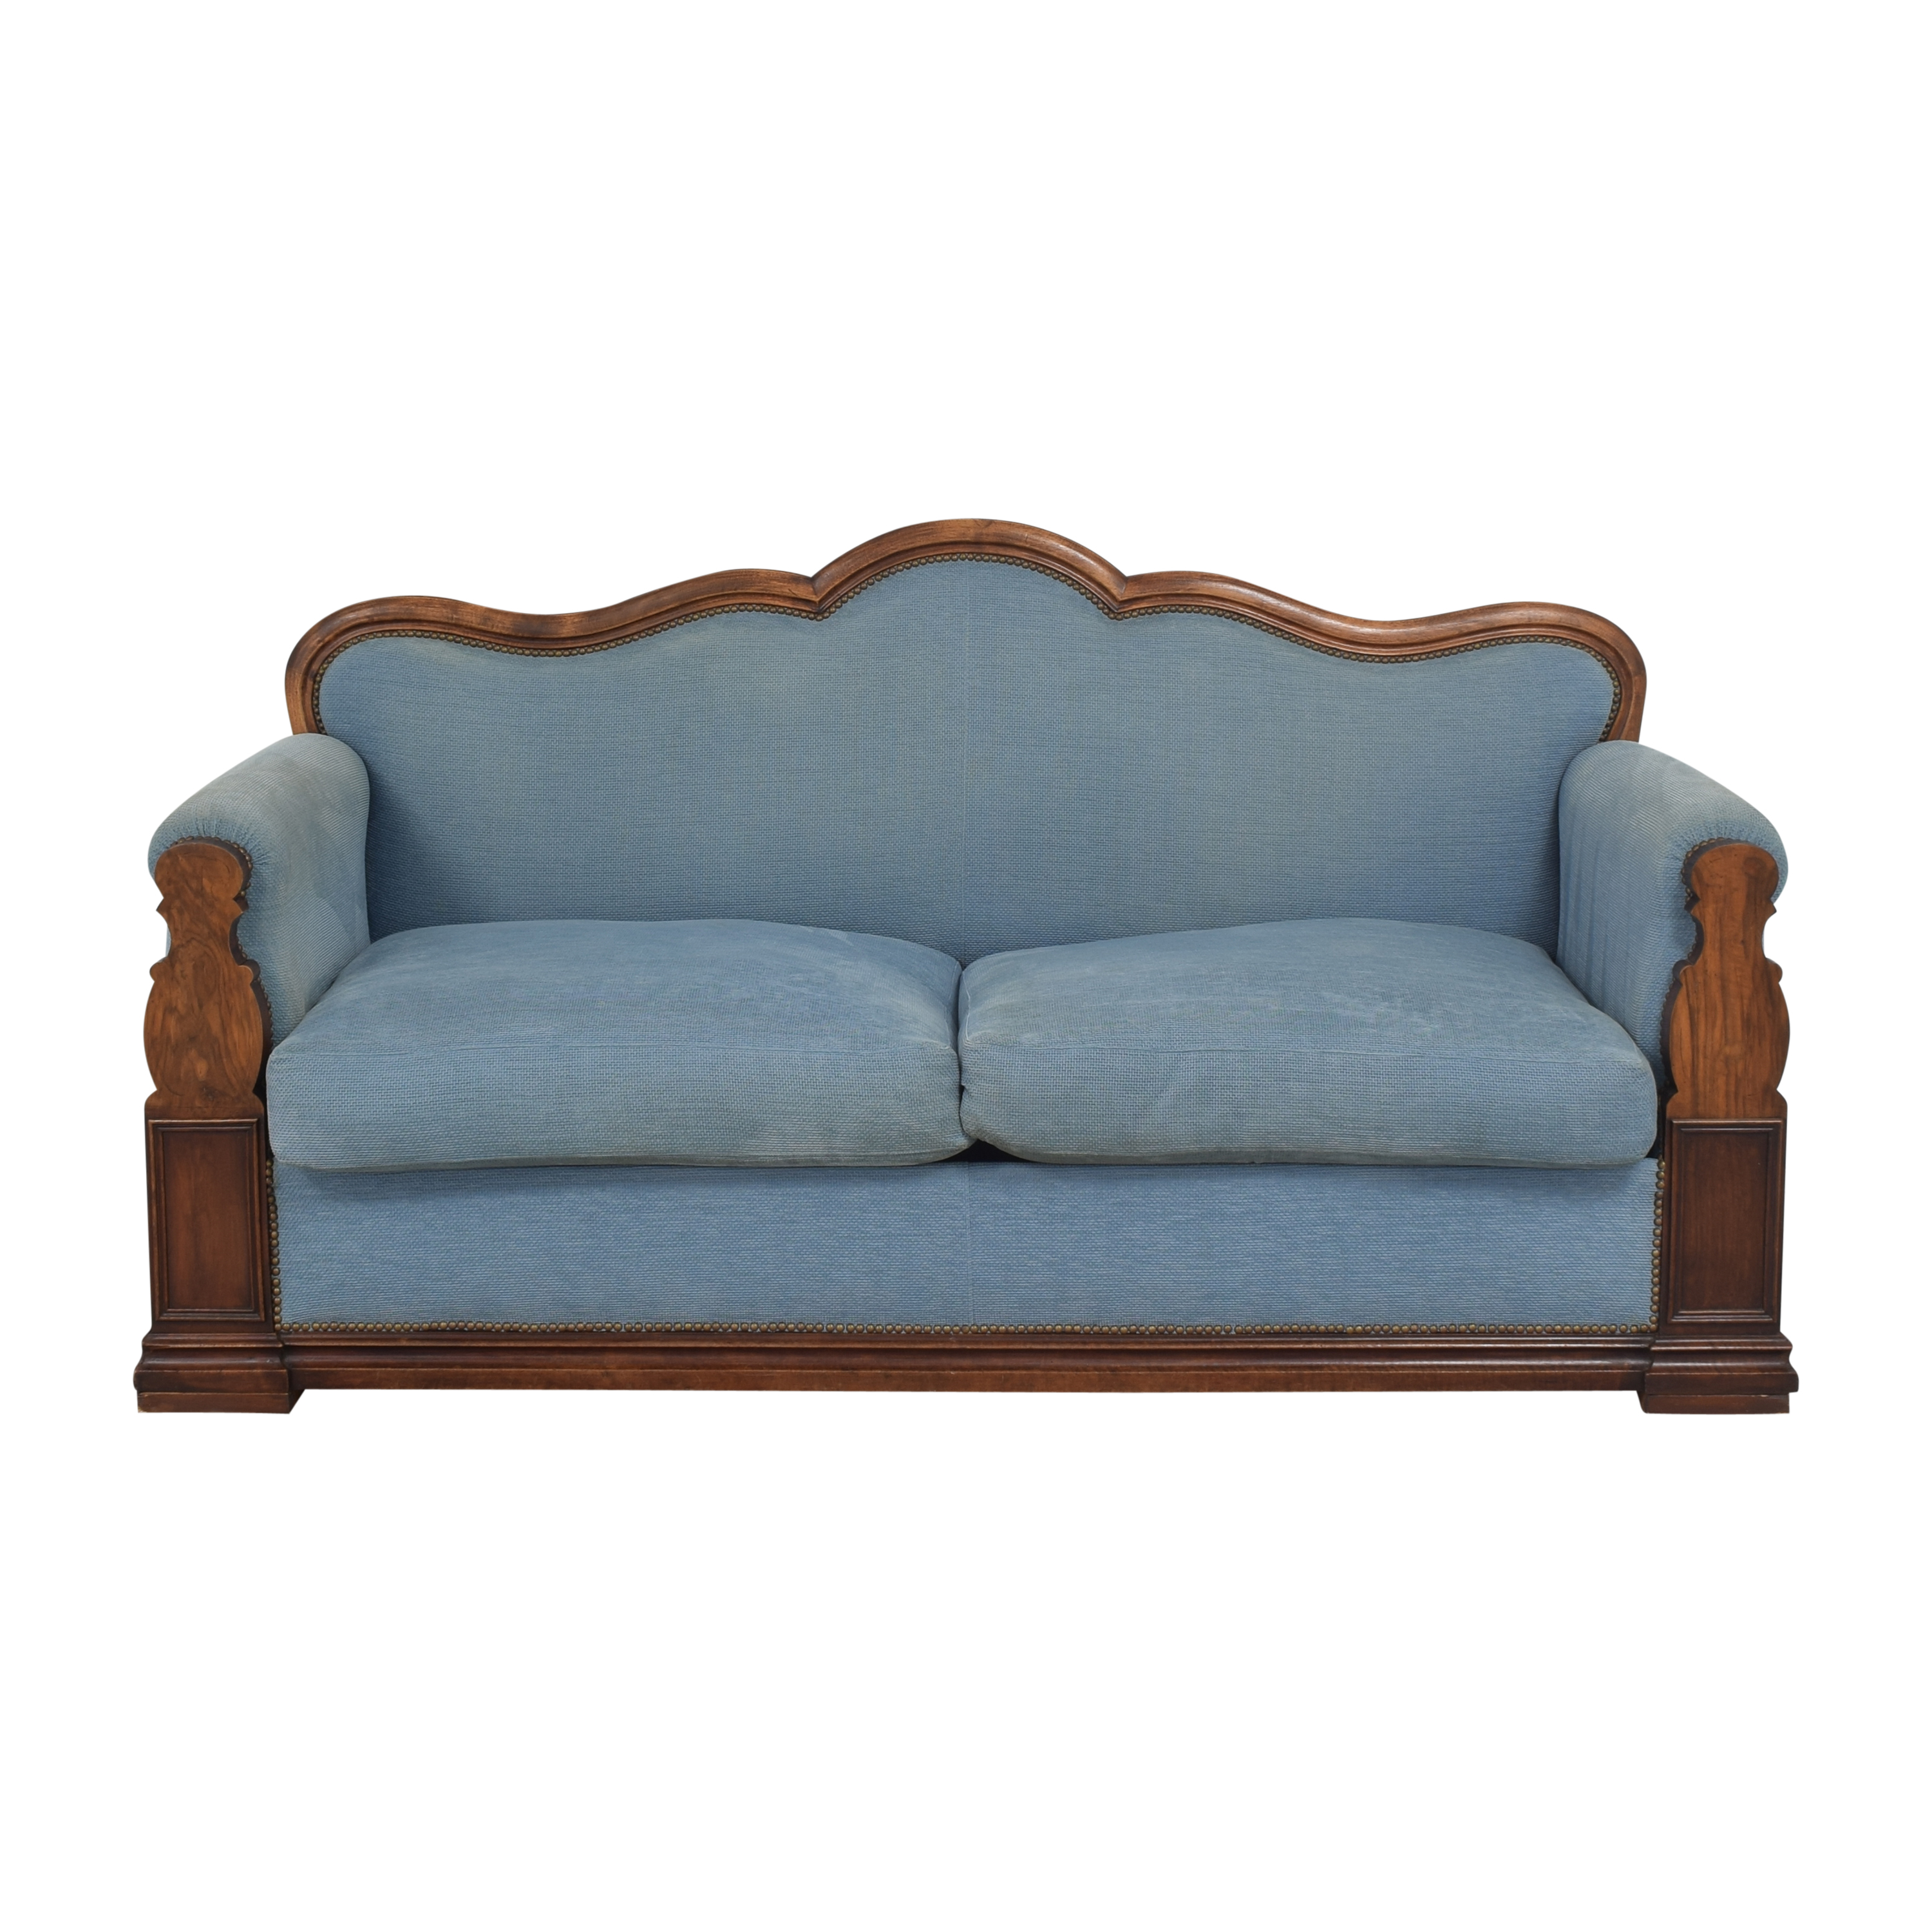 Louis Philippe-Style Two Cushion Sofa second hand